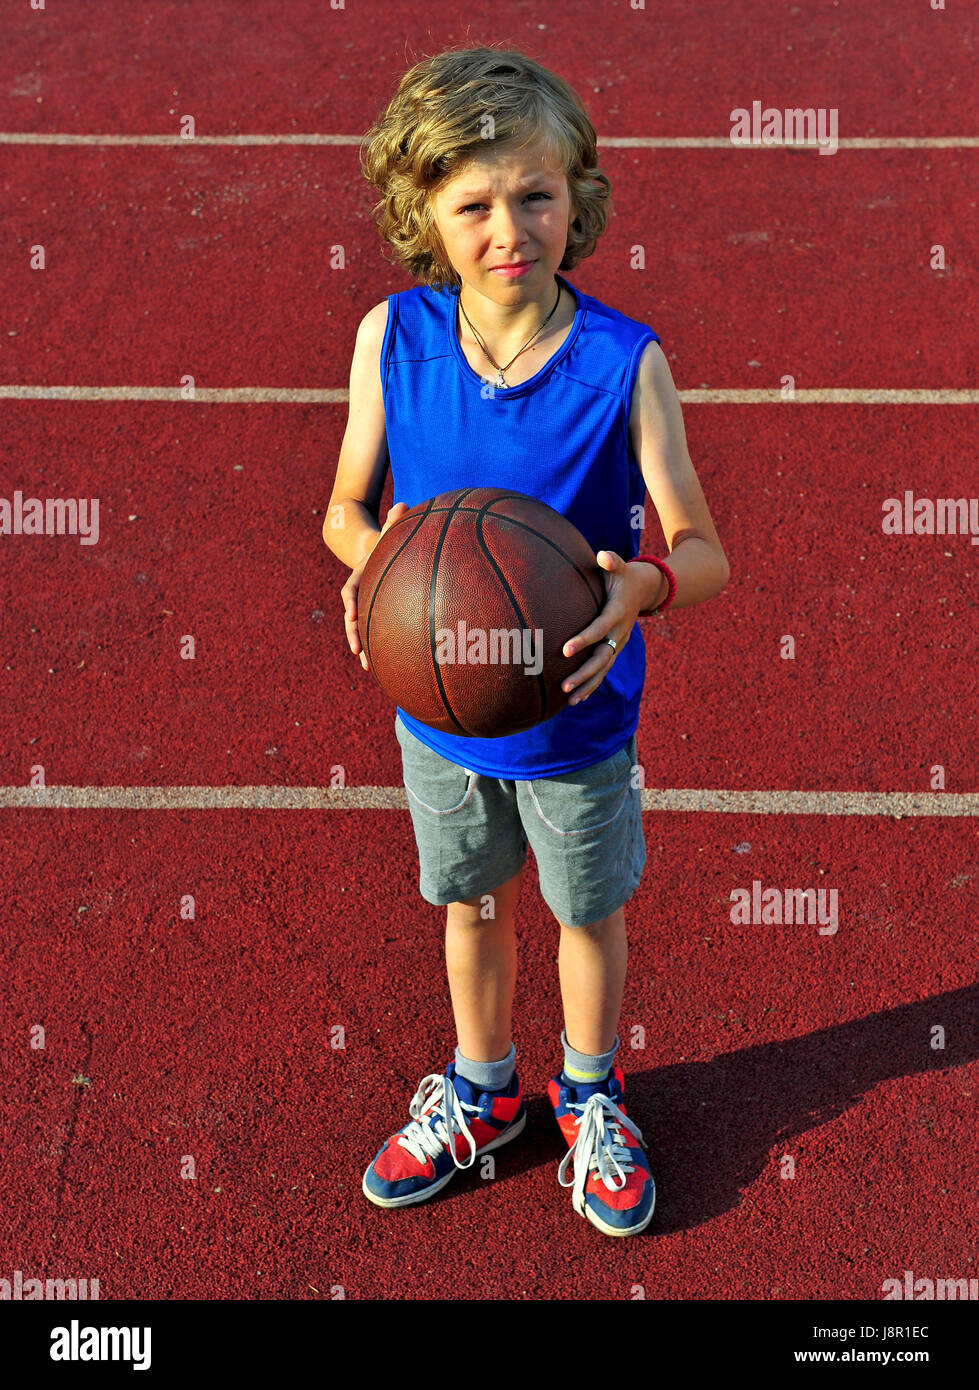 12def244b26 Little basketball player ready for a shot Stock Photo: 143106276 - Alamy